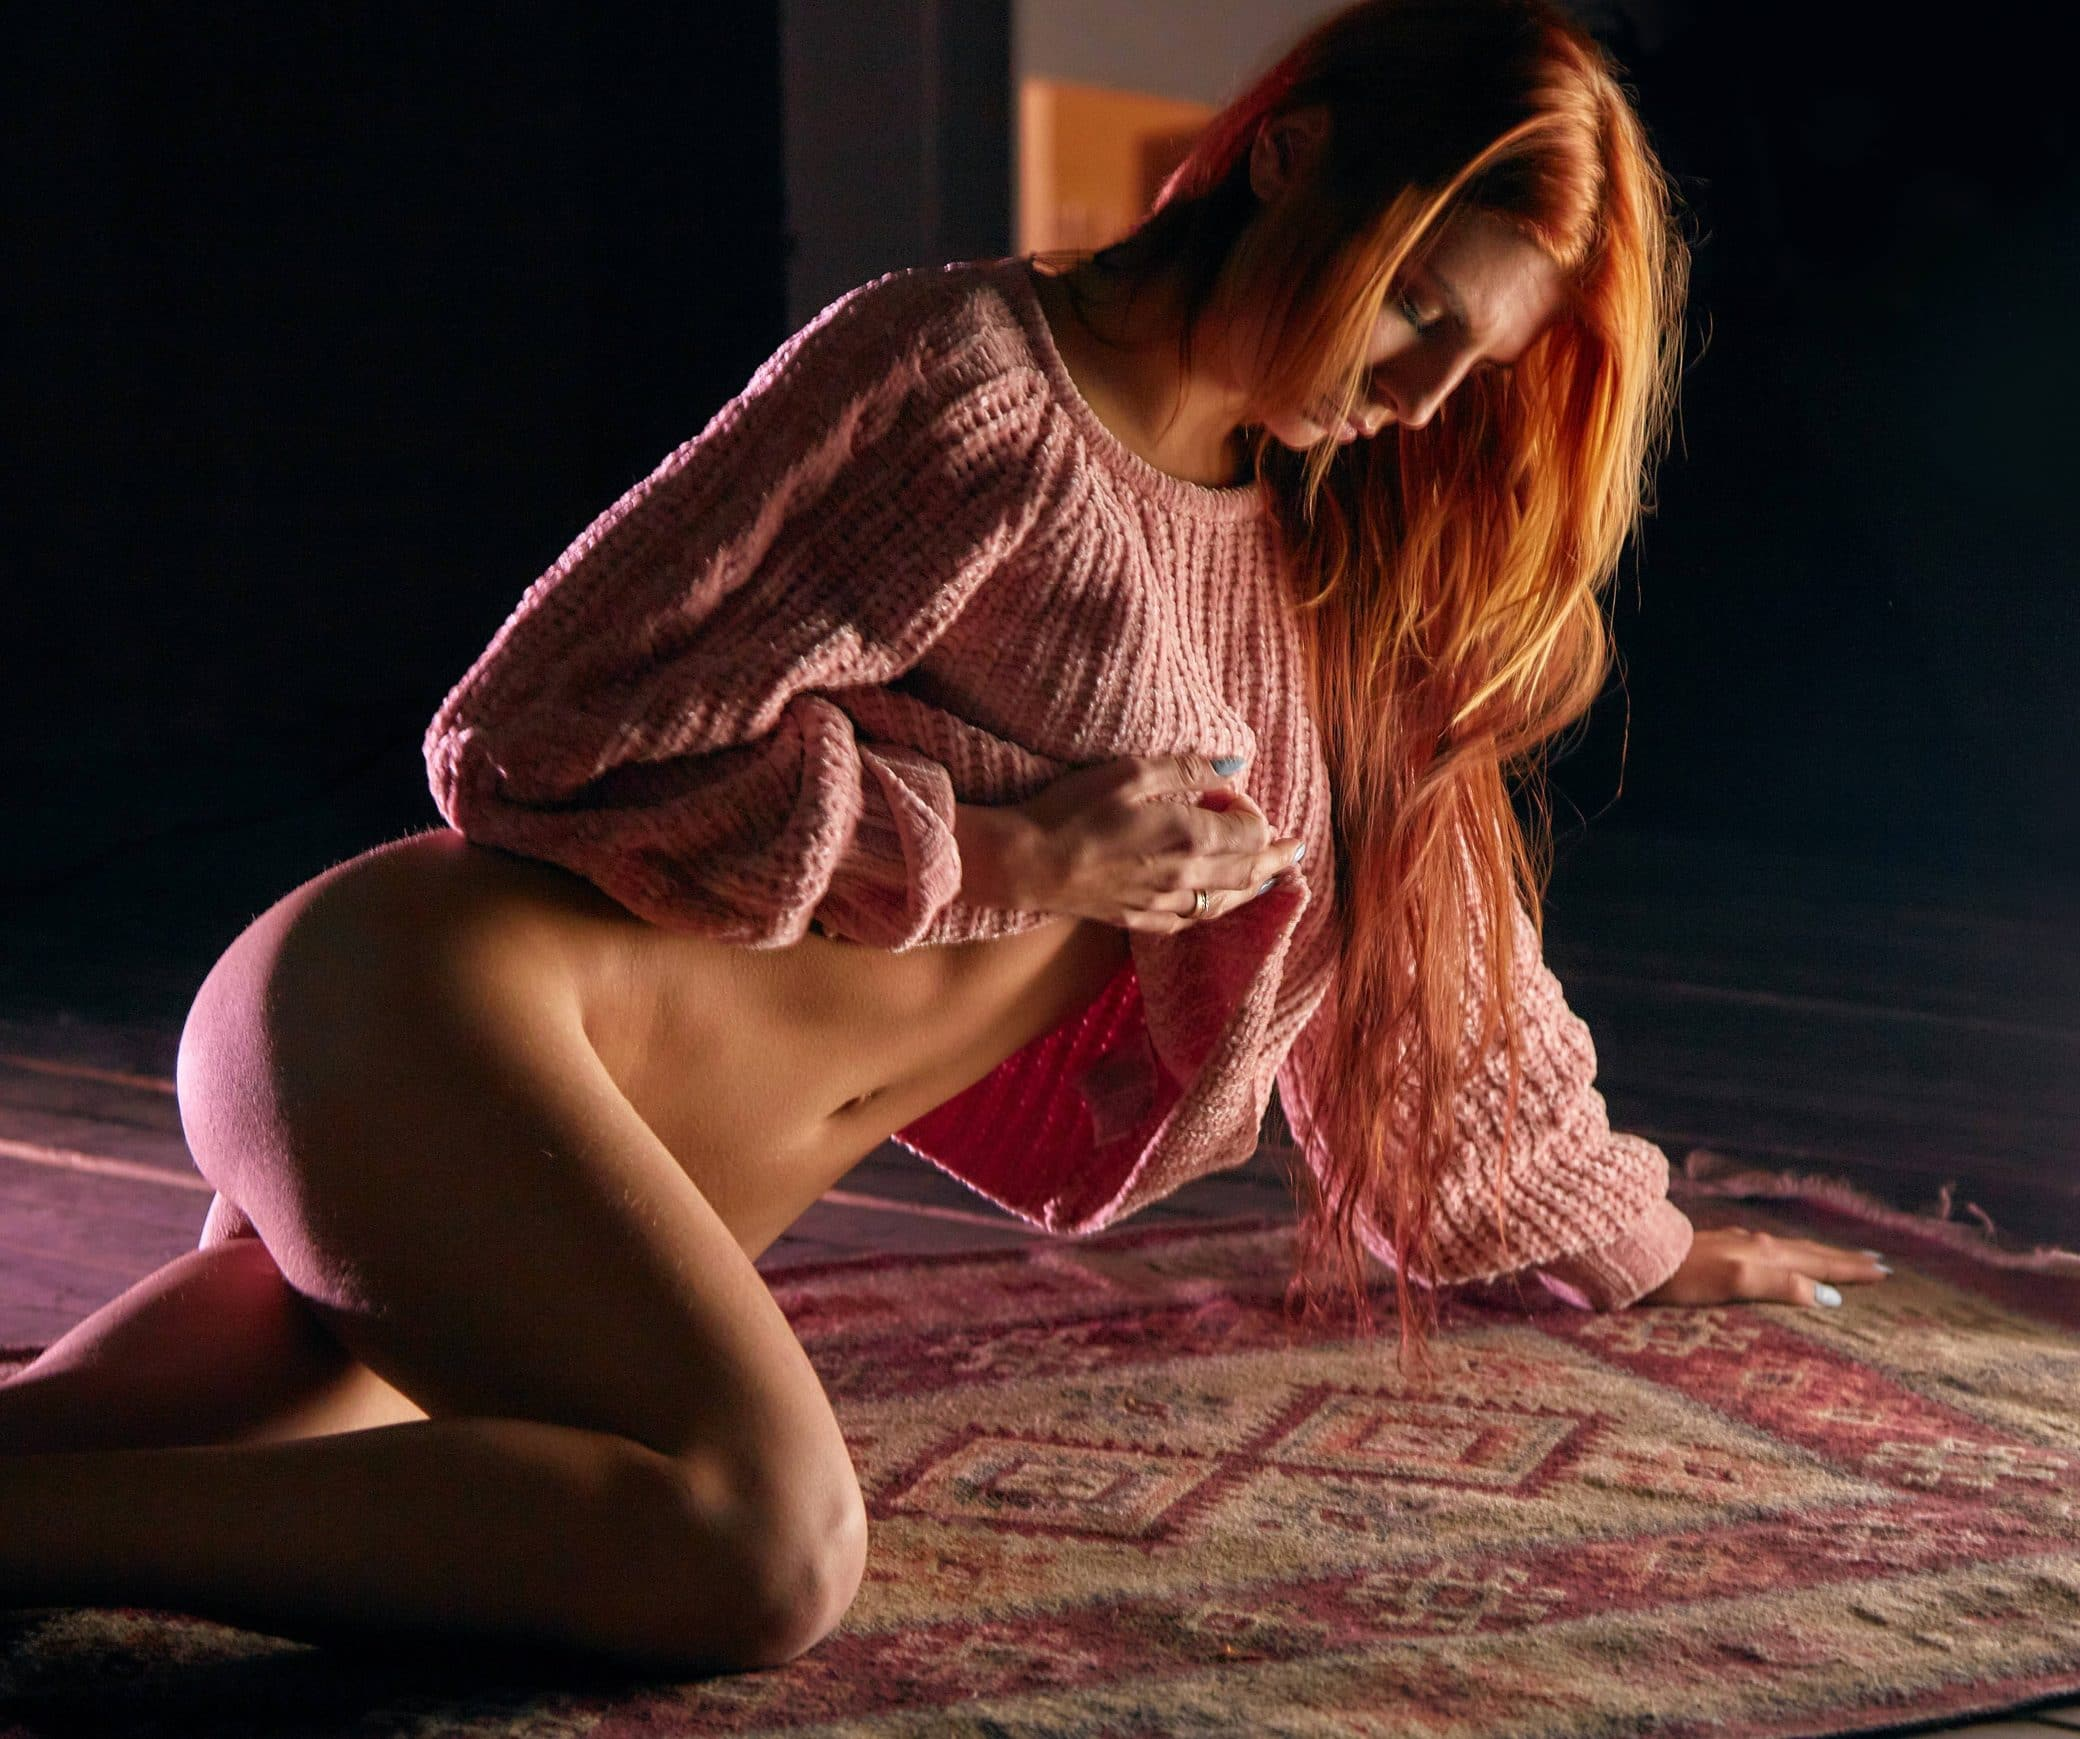 Beautiful sexy redhead woman modeling only wearing a knitted sweater lifting it to show her bum, sexy legs and stomach